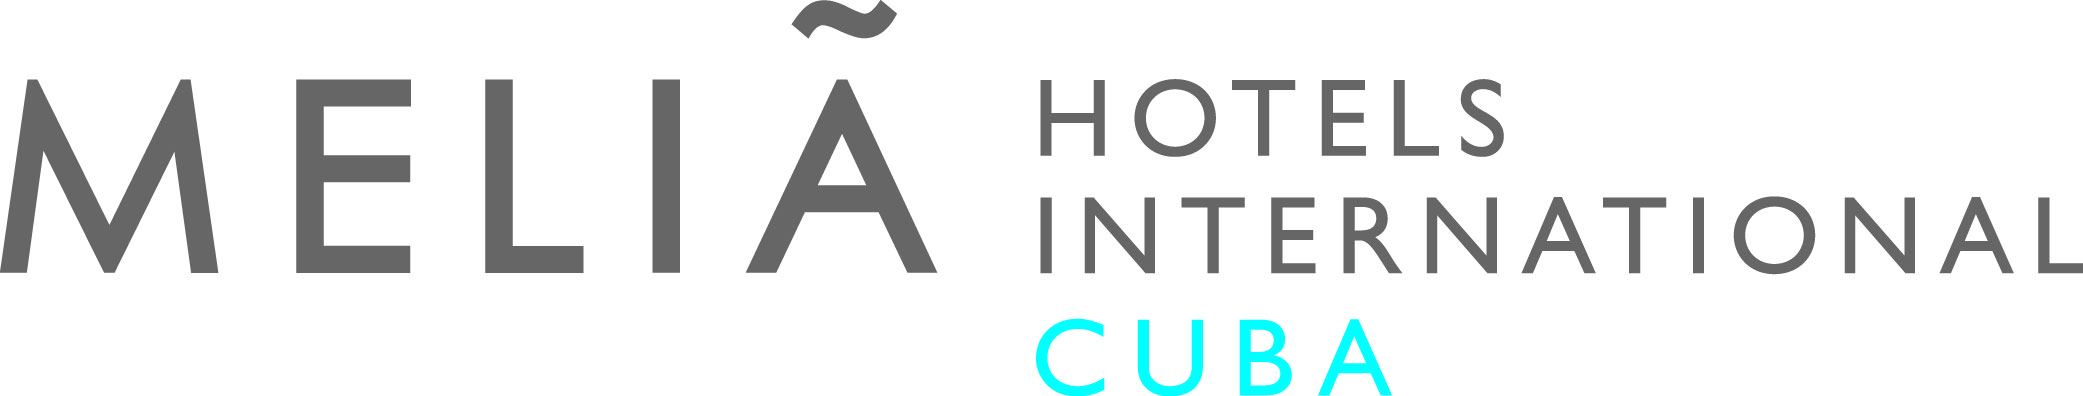 Melia Hotels International Cuba